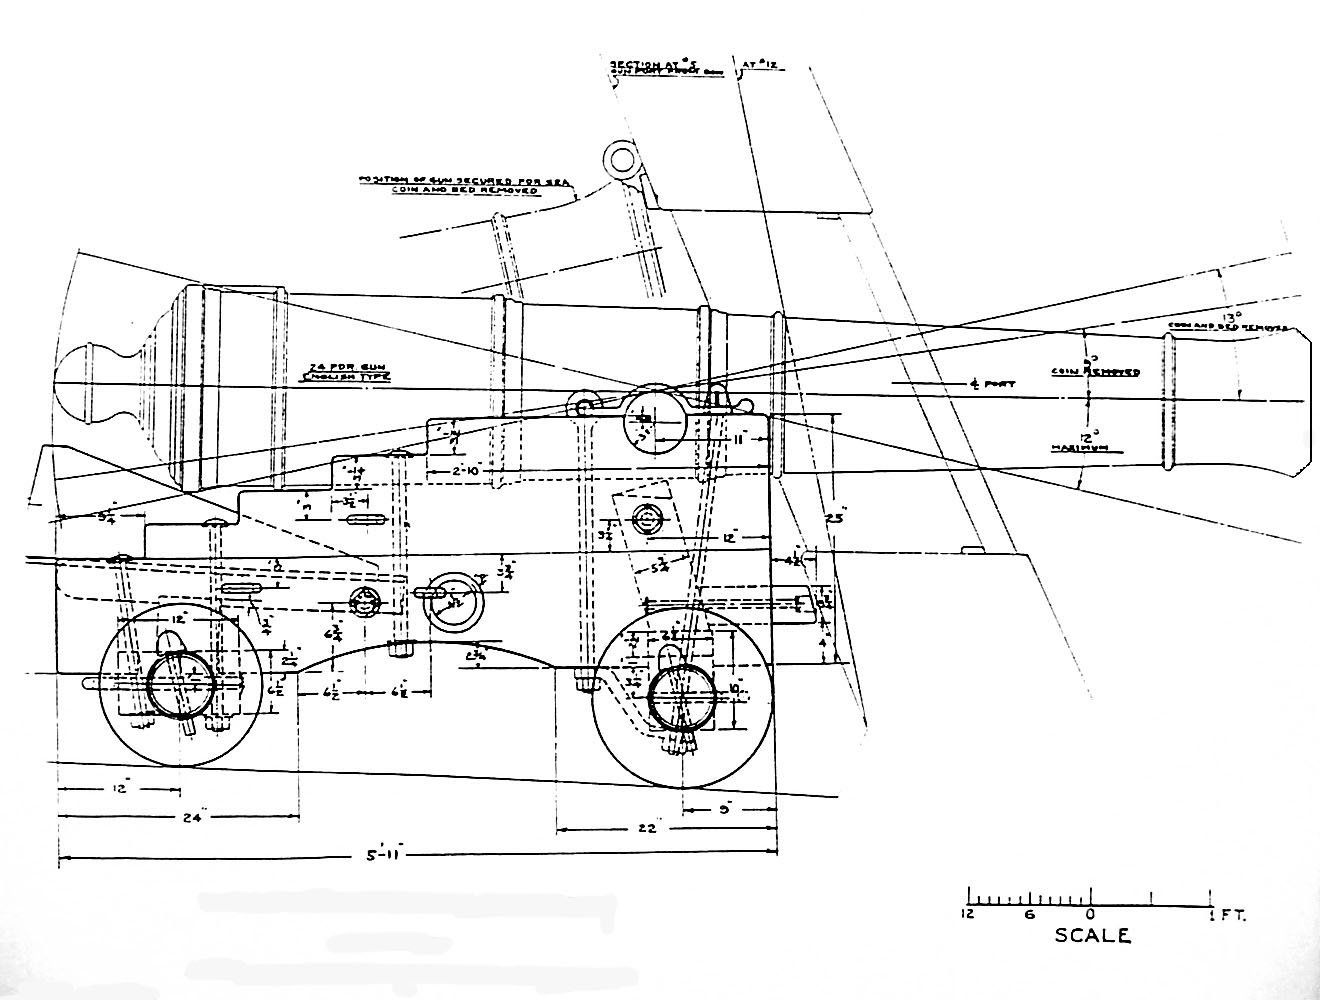 Uss Constitution Diagram Dictator Engine Management Wiring Globalsecurity Org Reliable Security Information